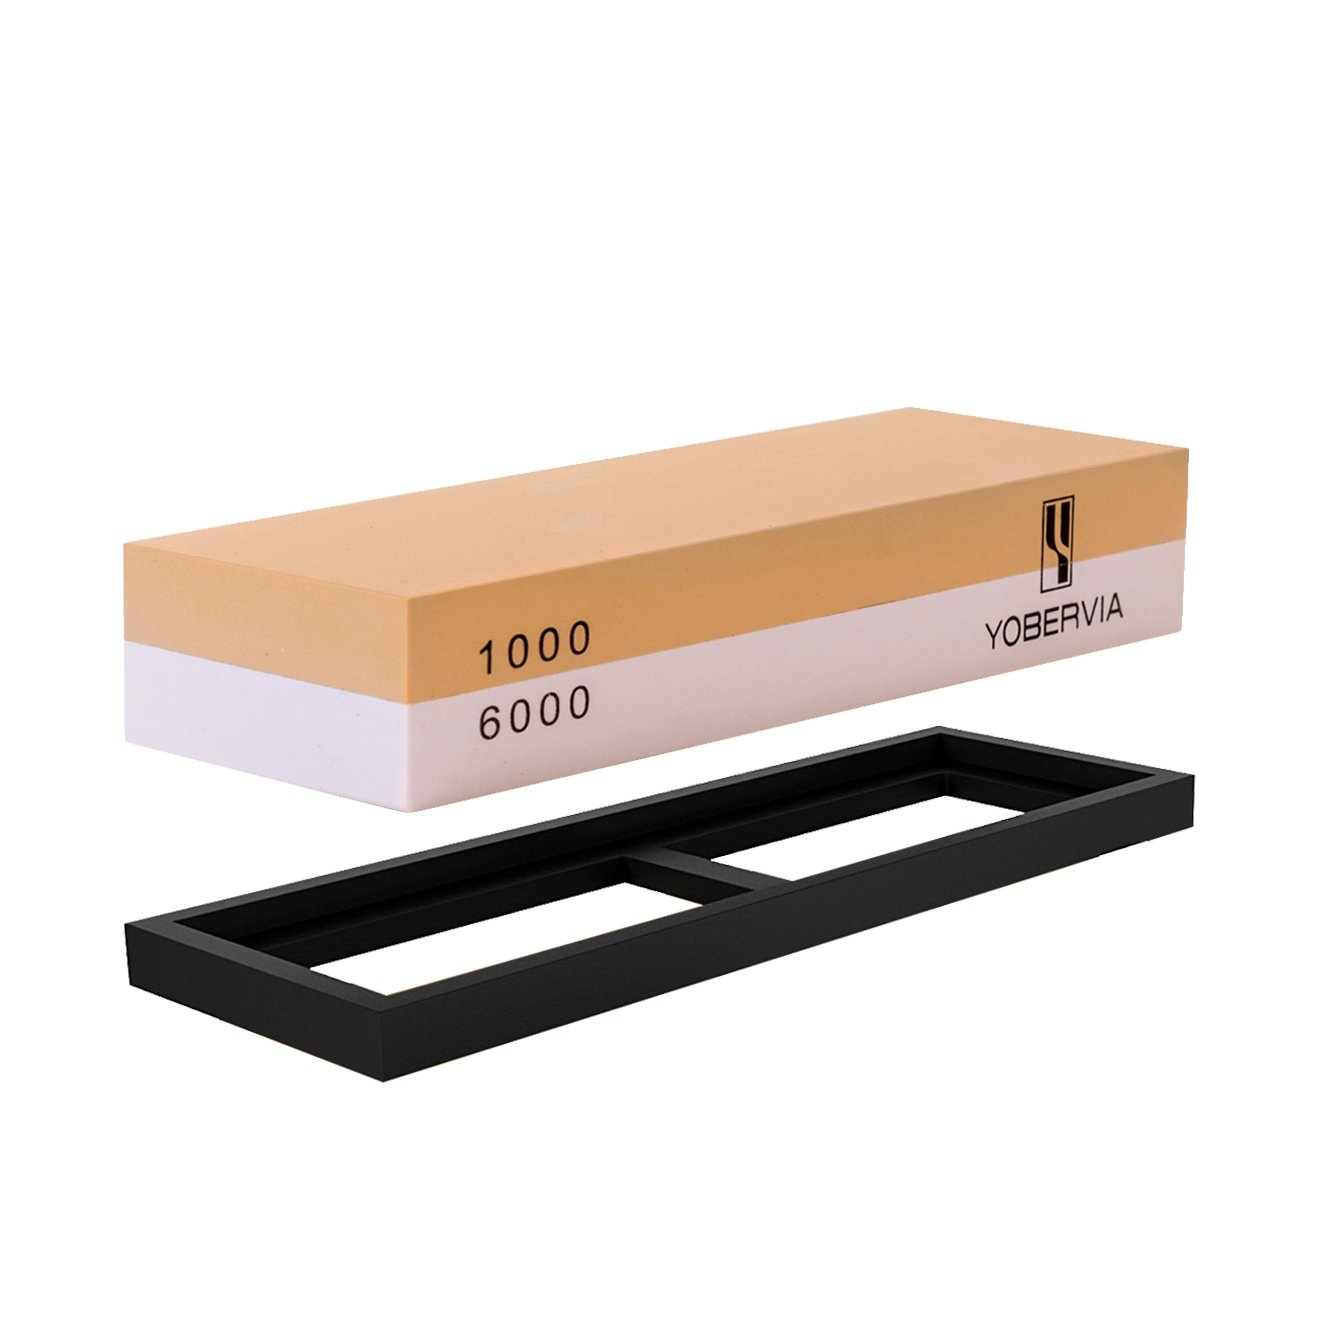 Knife Sharpening Stone, 2-Sided Whetstone with Non-Slip Base, Best Kitchen Blade Sharpener, Grit 1000/6000 Waterstone by YOBERVIA